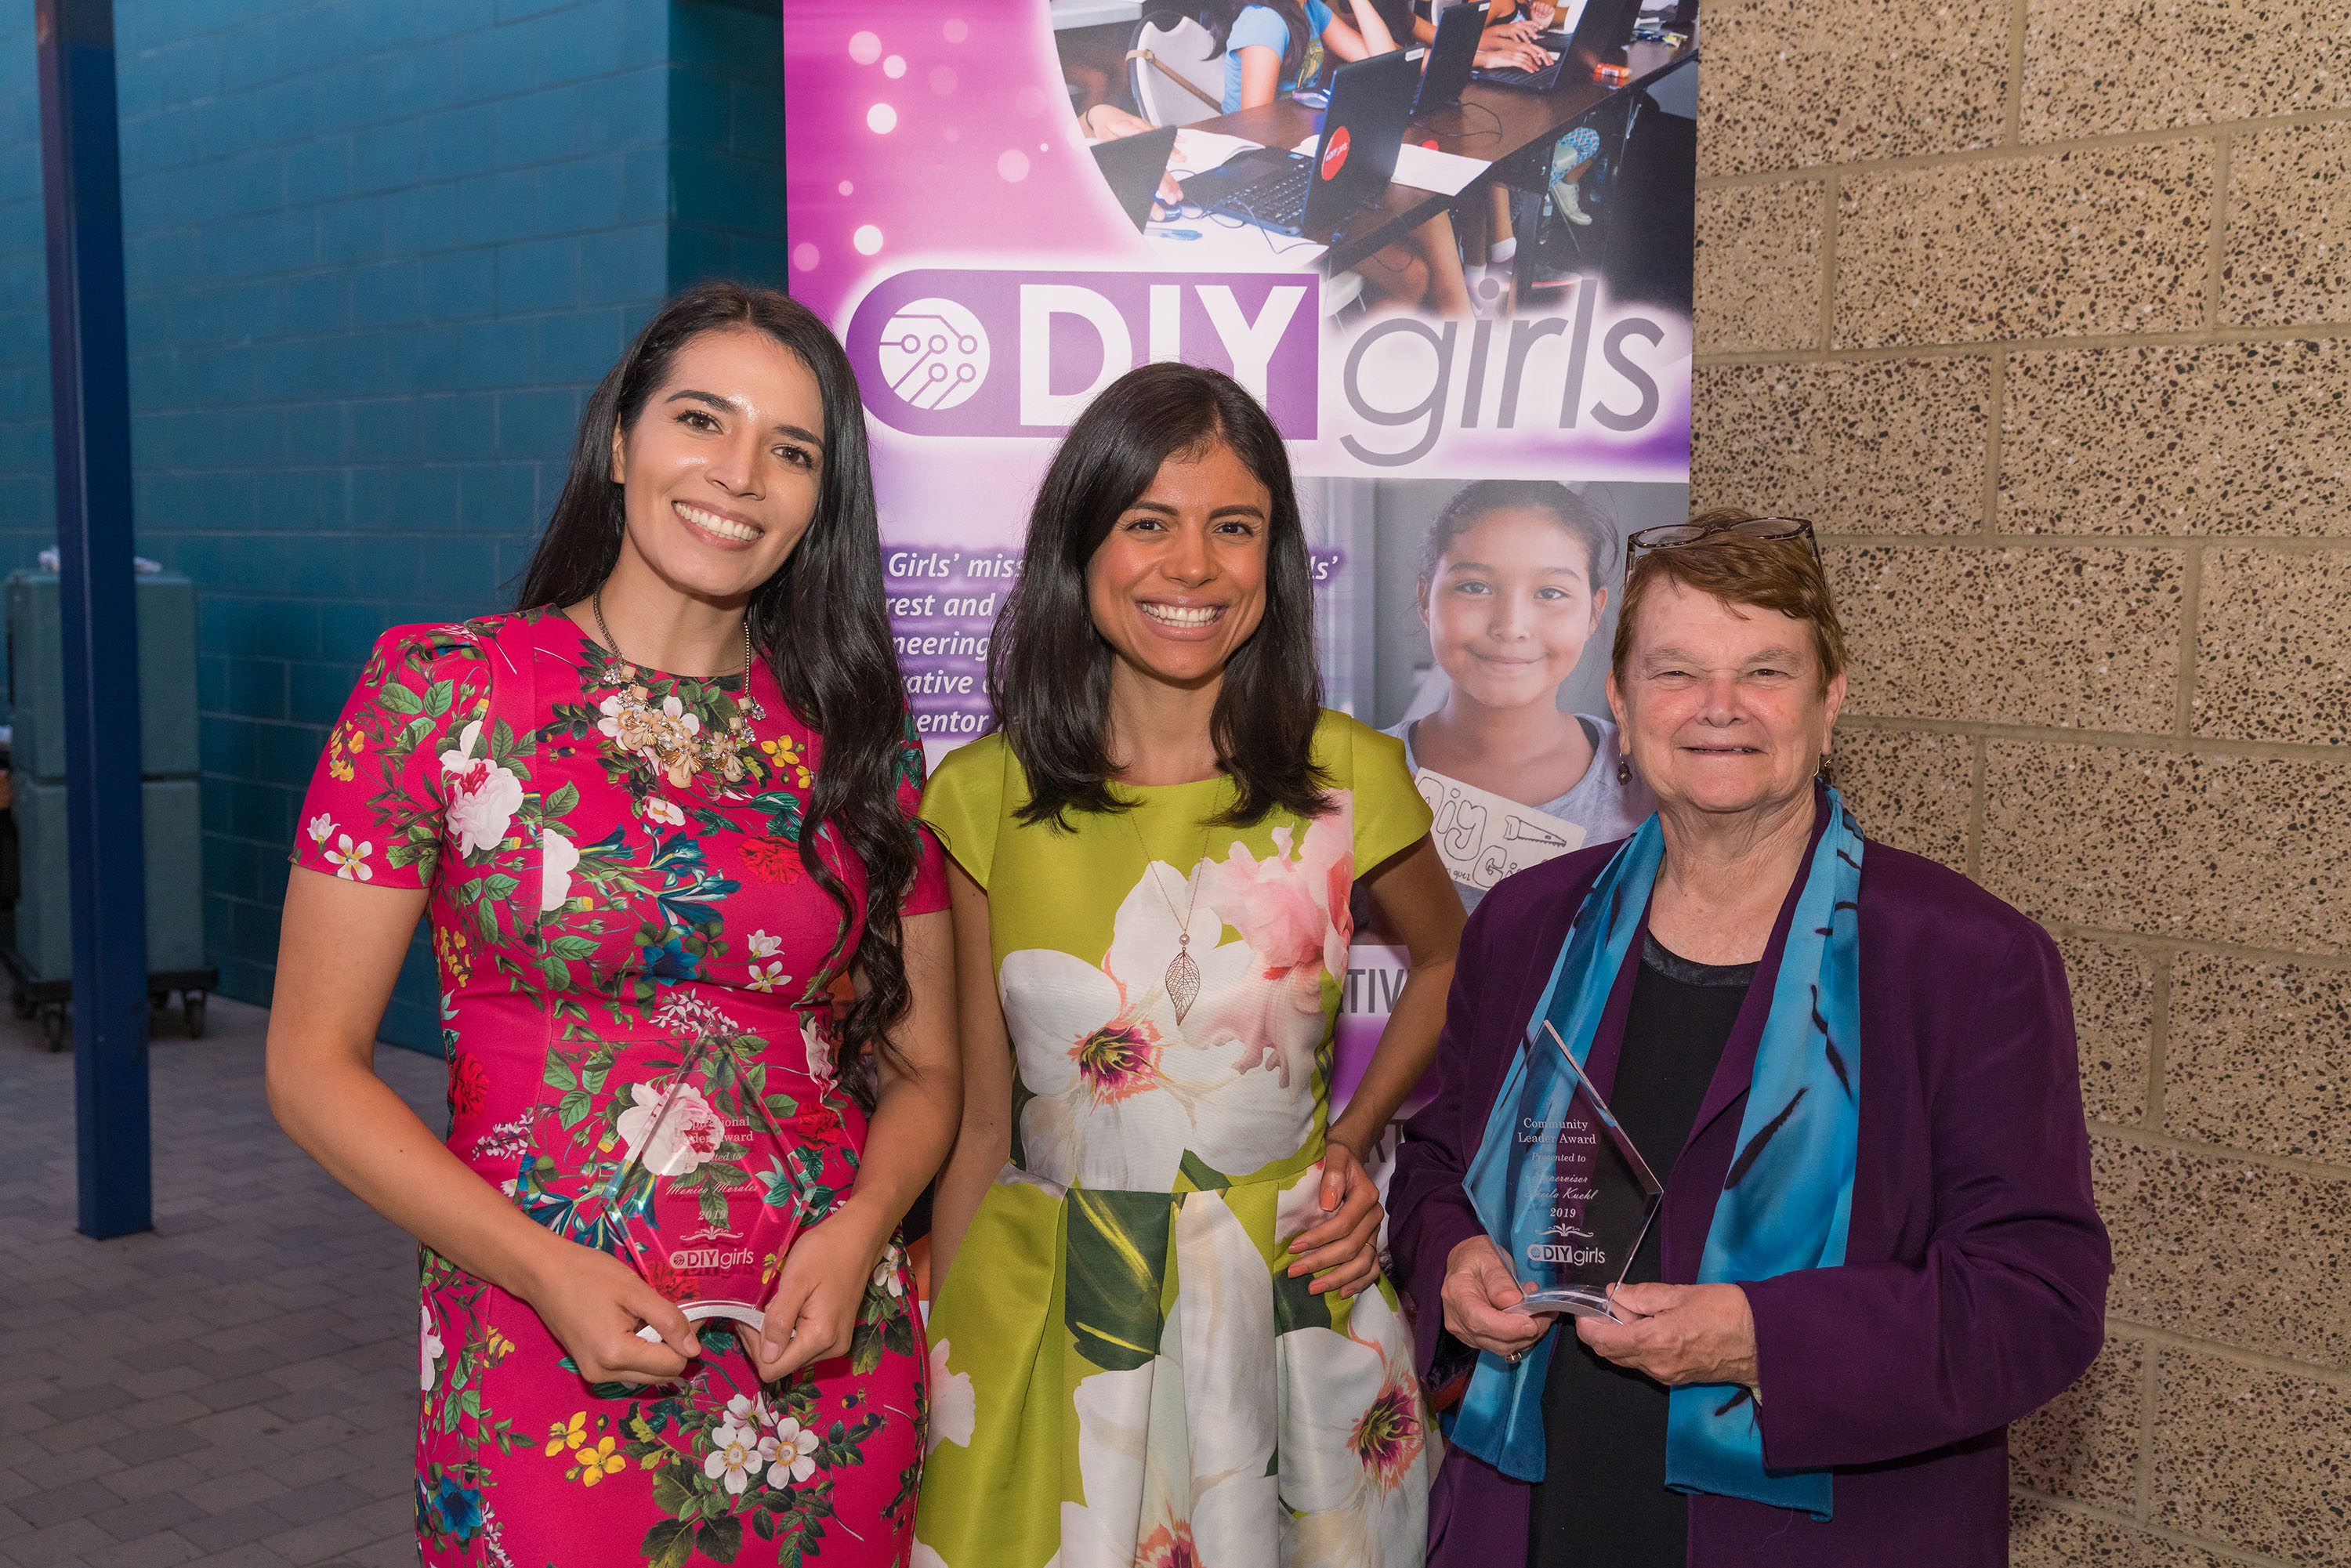 District 3 – Supervisor Sheila Kuehl<br>  <b>Sept. 9, 2019 - DIY Girls 3rd Annual Cocktail Benefit</b><br>   <i>Photo by Chris Valle / For the Board of Supervisors</i>